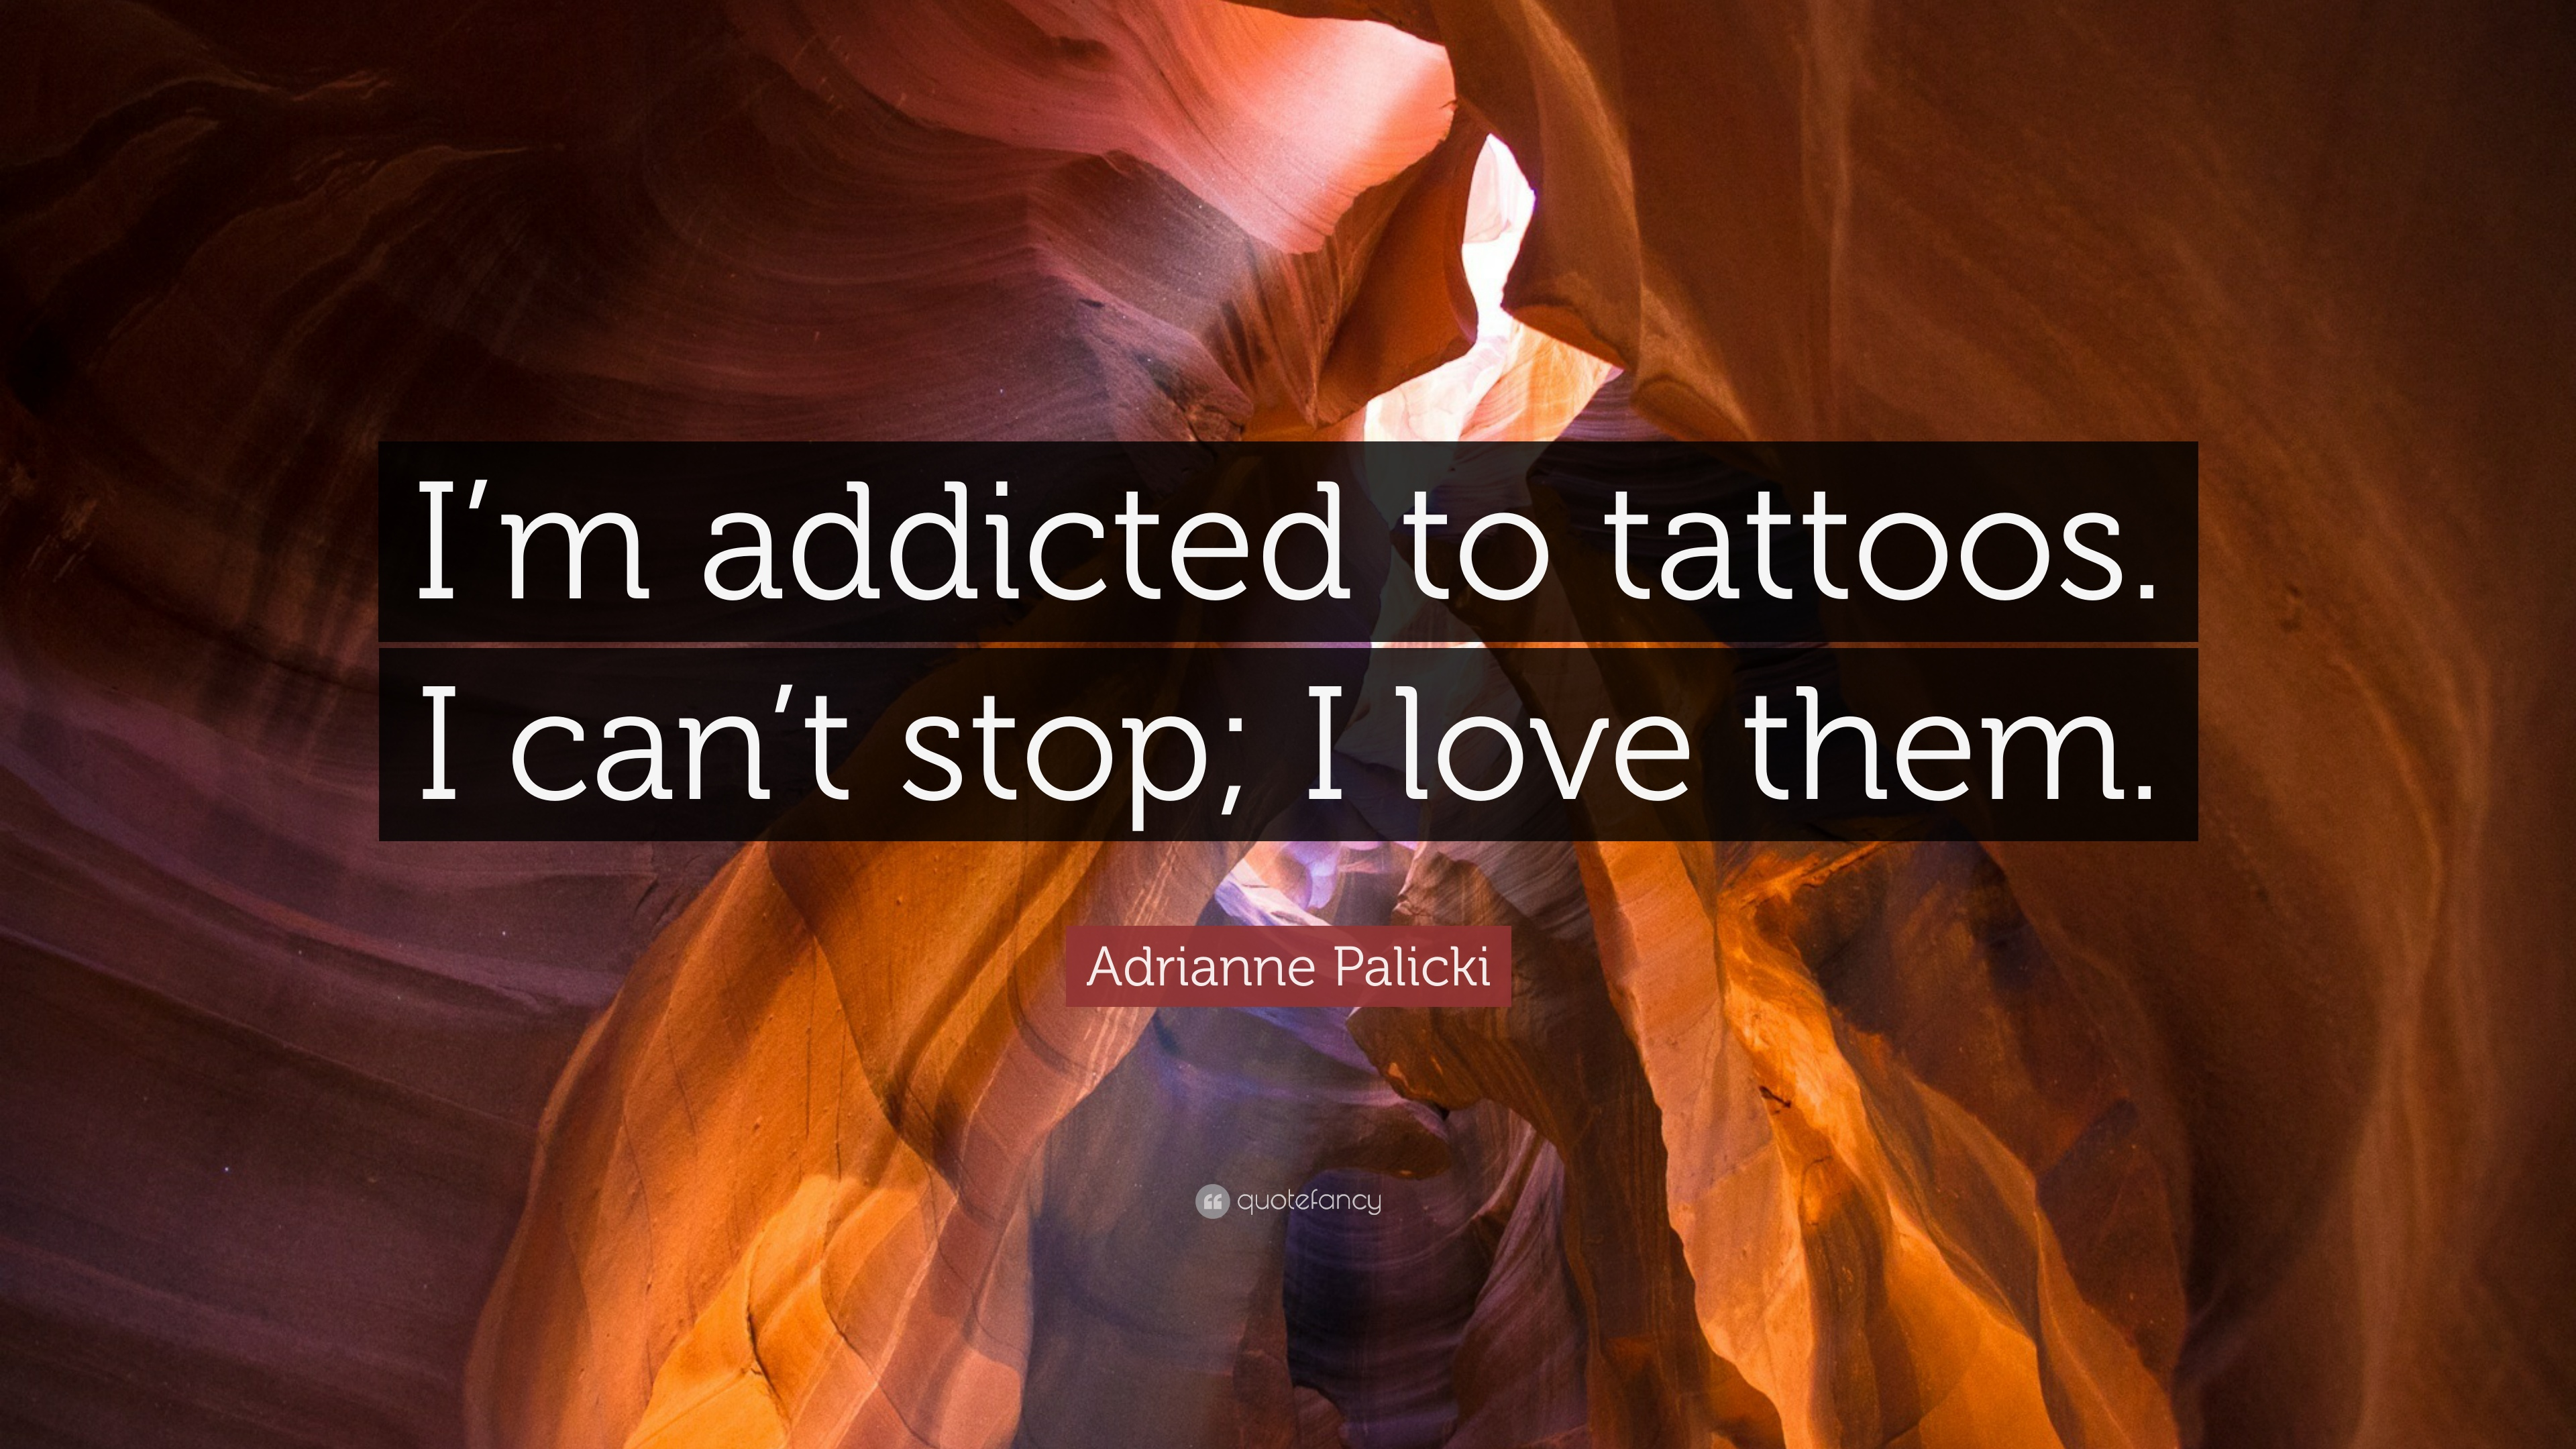 adrianne palicki quote i m addicted to tattoos i can t stop i